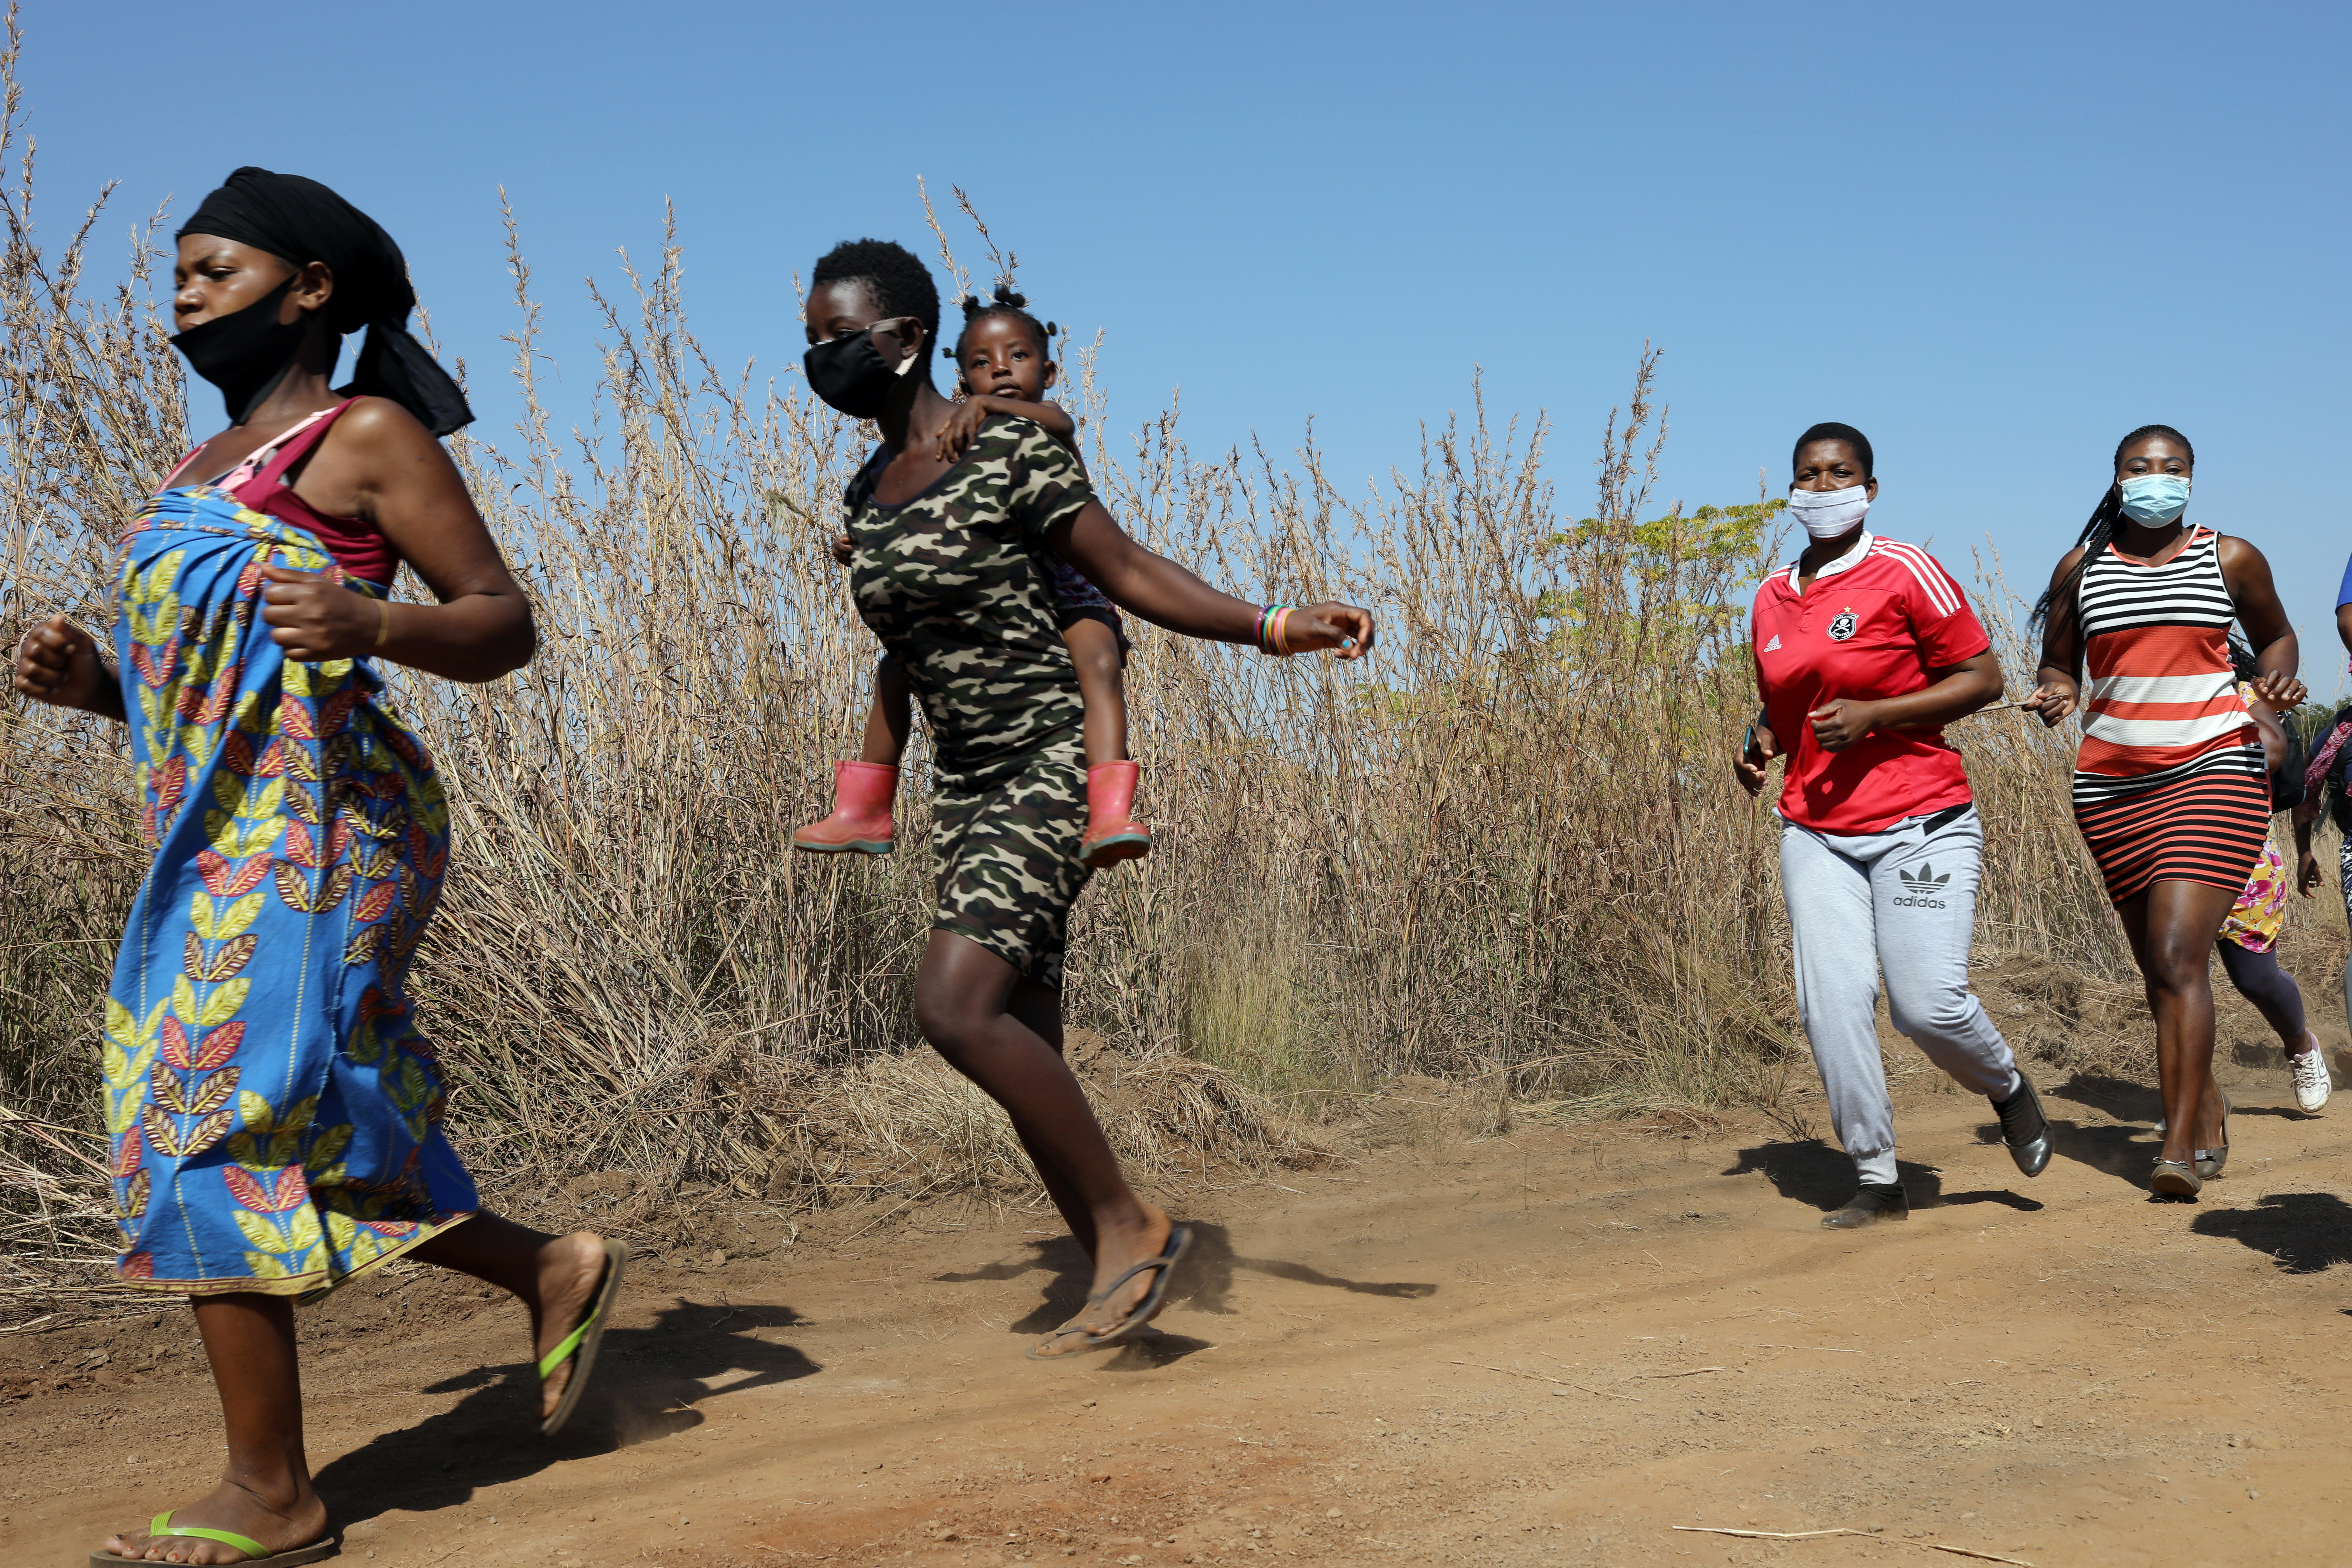 Women and children run to receive food aid amid the spread of  the coronavirus disease (COVID-19) outbreak, at the Itireleng informal settlement, near Laudium suburb in Pretoria, South Africa, May 20, 2020. REUTERS/Siphiwe Sibeko - RC2BSG9AN9D6